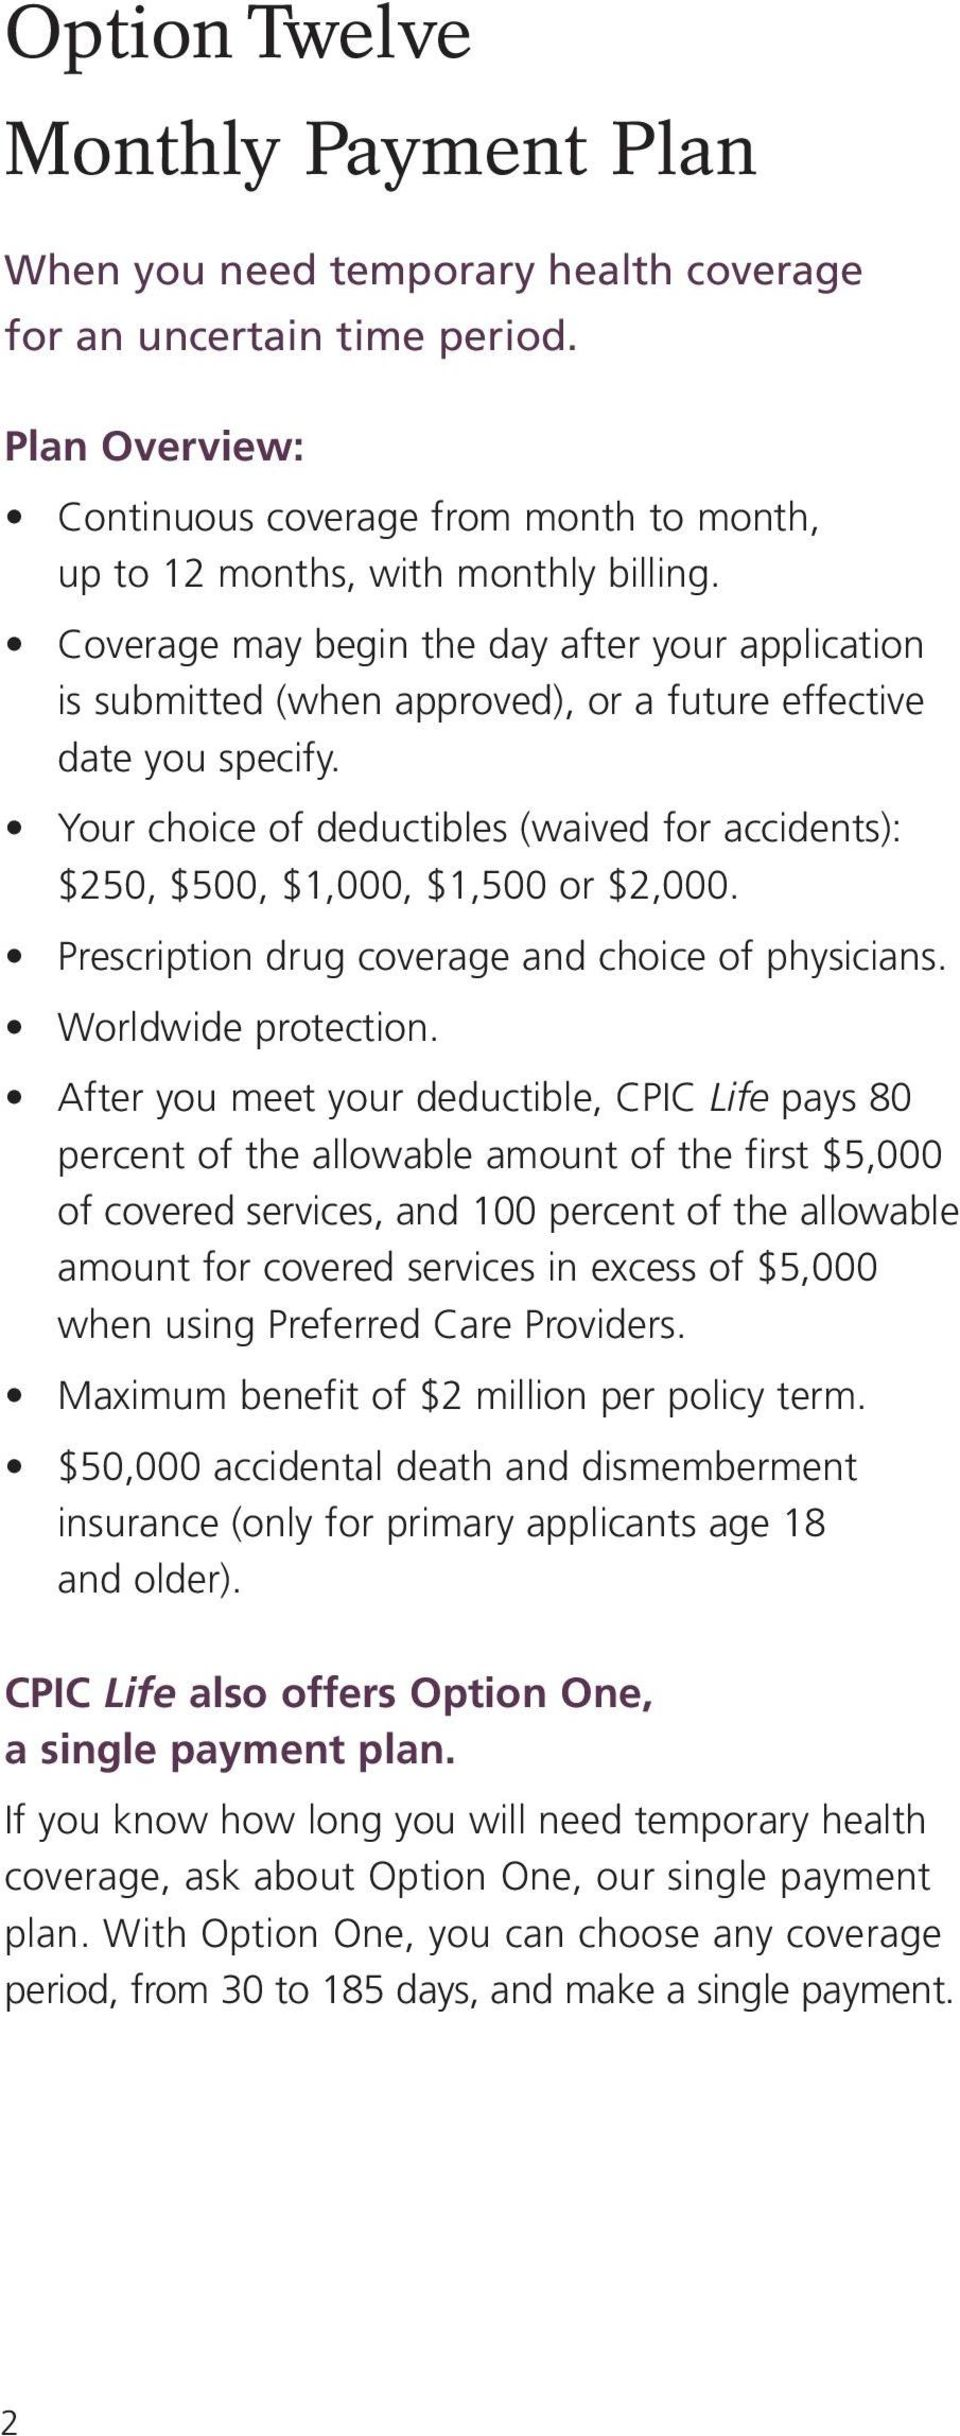 Your choice of deductibles (waived for accidents): $250, $500, $1,000, $1,500 or $2,000. Prescription drug coverage and choice of physicians. Worldwide protection.